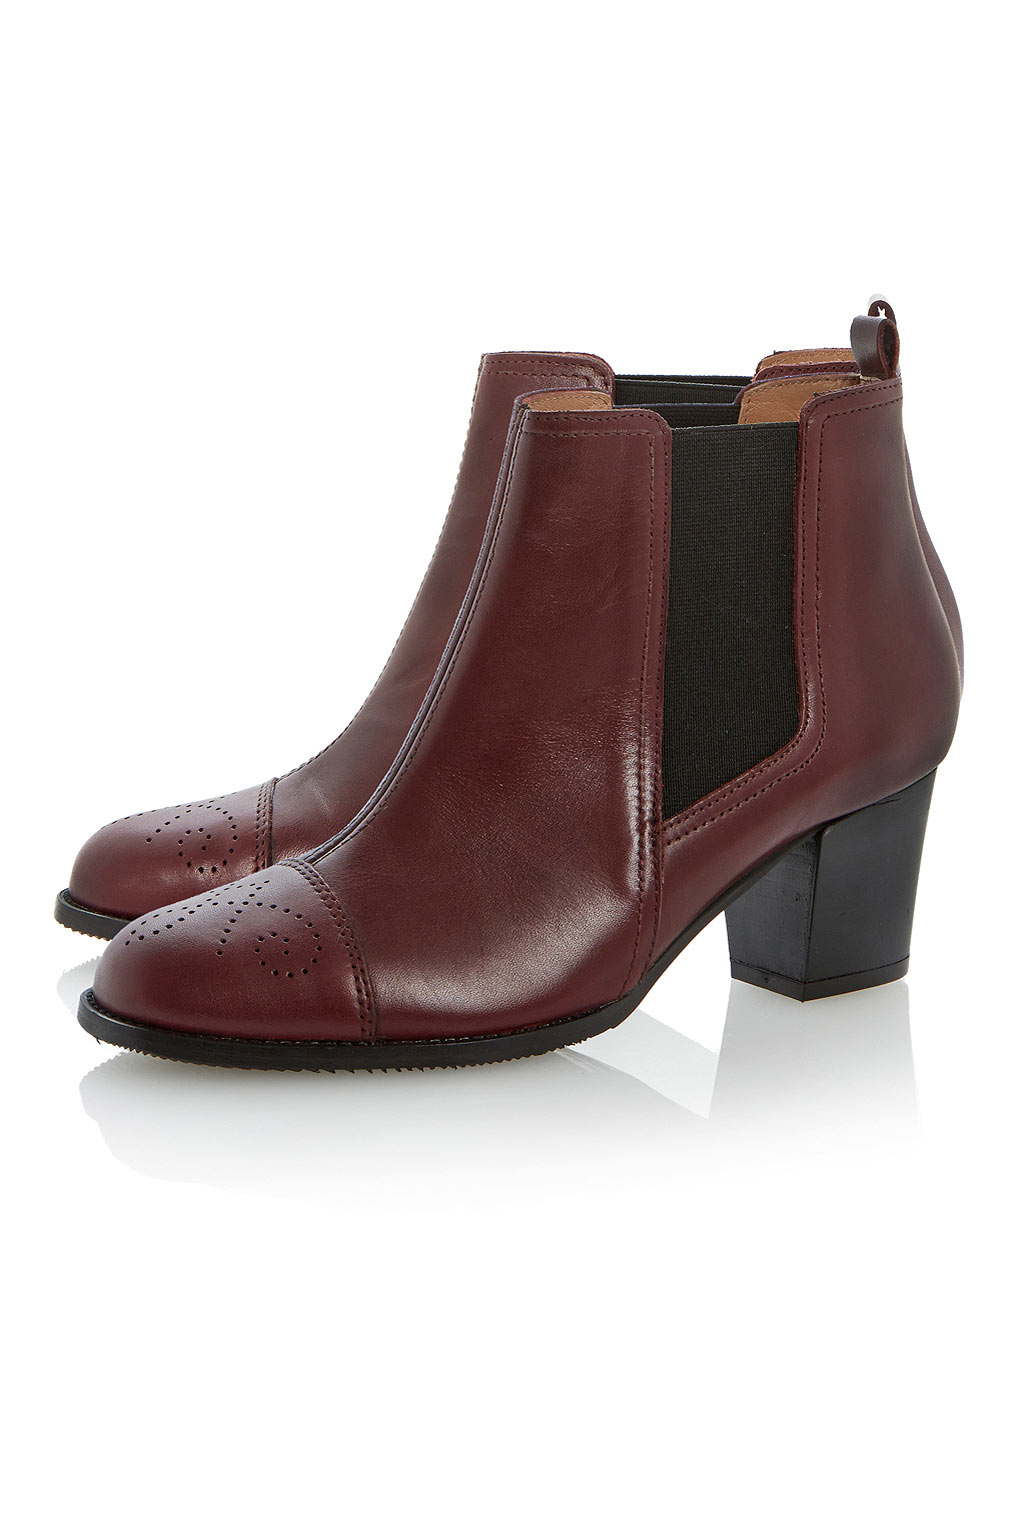 Topshop Sam Black Heeled Boots By Dune In Red - Lyst-3296